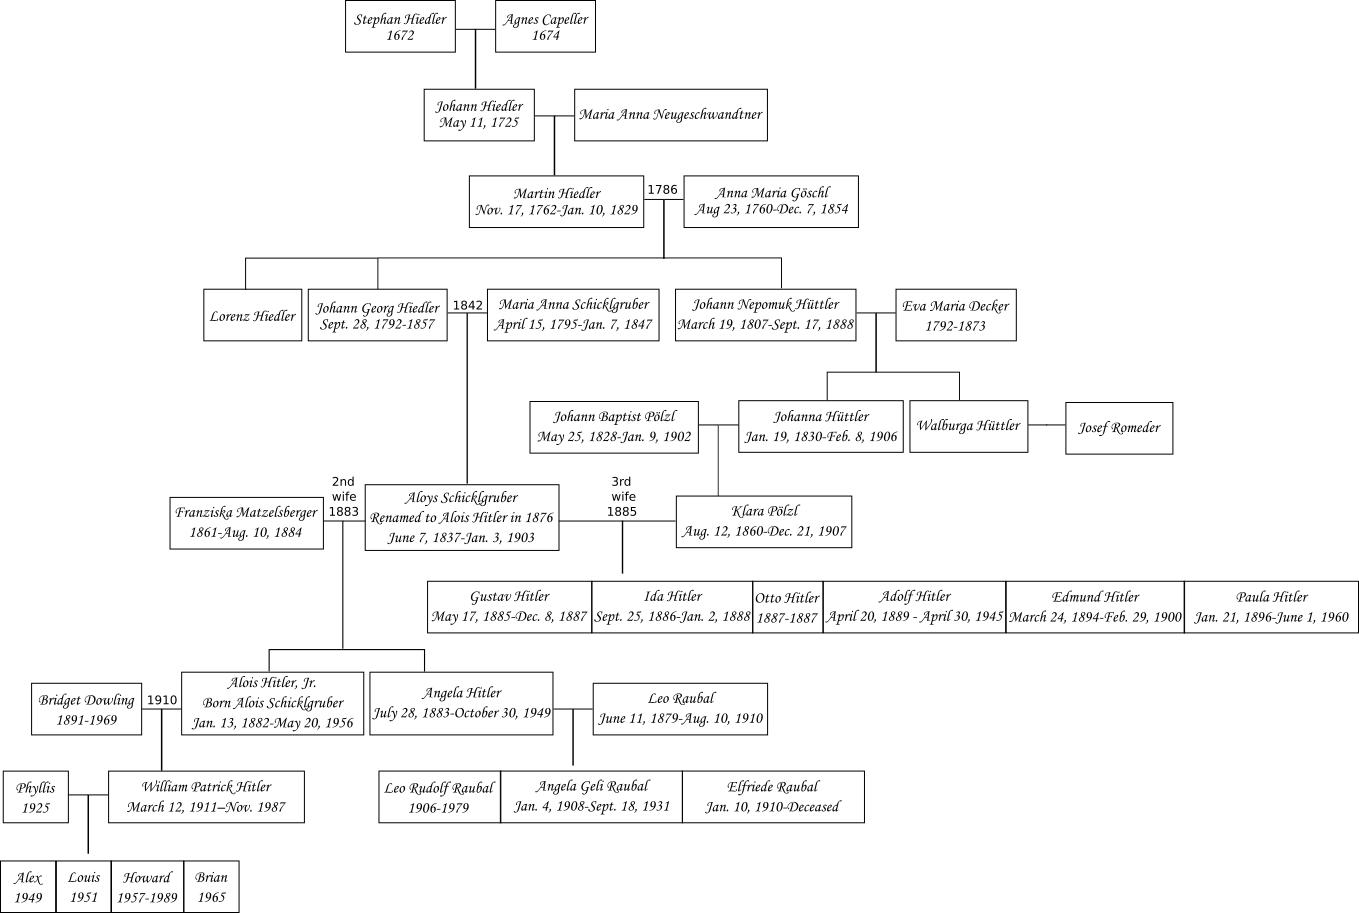 http://upload.wikimedia.org/wikipedia/commons/f/fd/Hitlerfamilytree.png